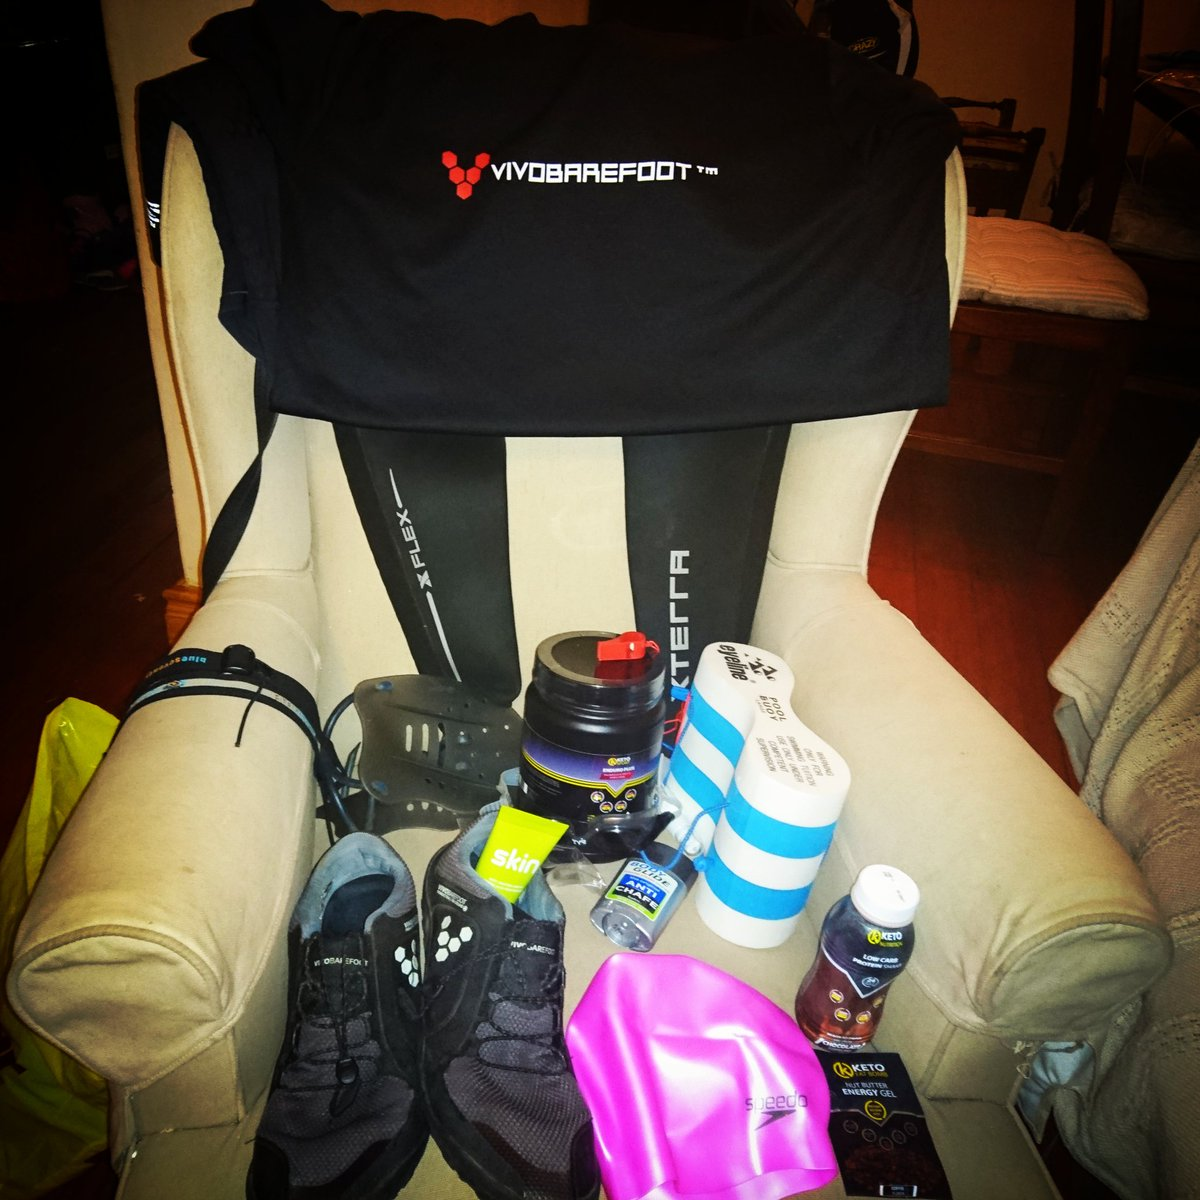 All prepared for the @torpedoswimrun tomorrow morning with @NativeSport Vivobarefoot,  @keto_nutrition and @XTERRAWETSUITS <br>http://pic.twitter.com/34Z8dWpKxZ